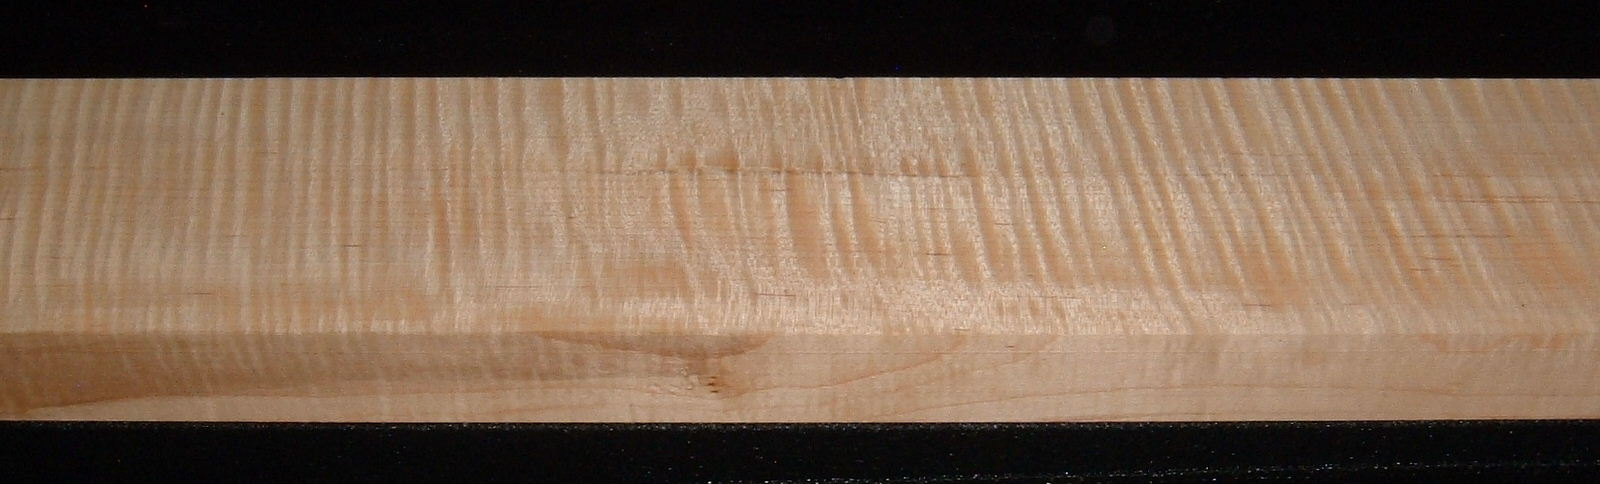 QS2007-17, 1-1/4x3-5/8x42, Quartersawn Curly Tiger Maple